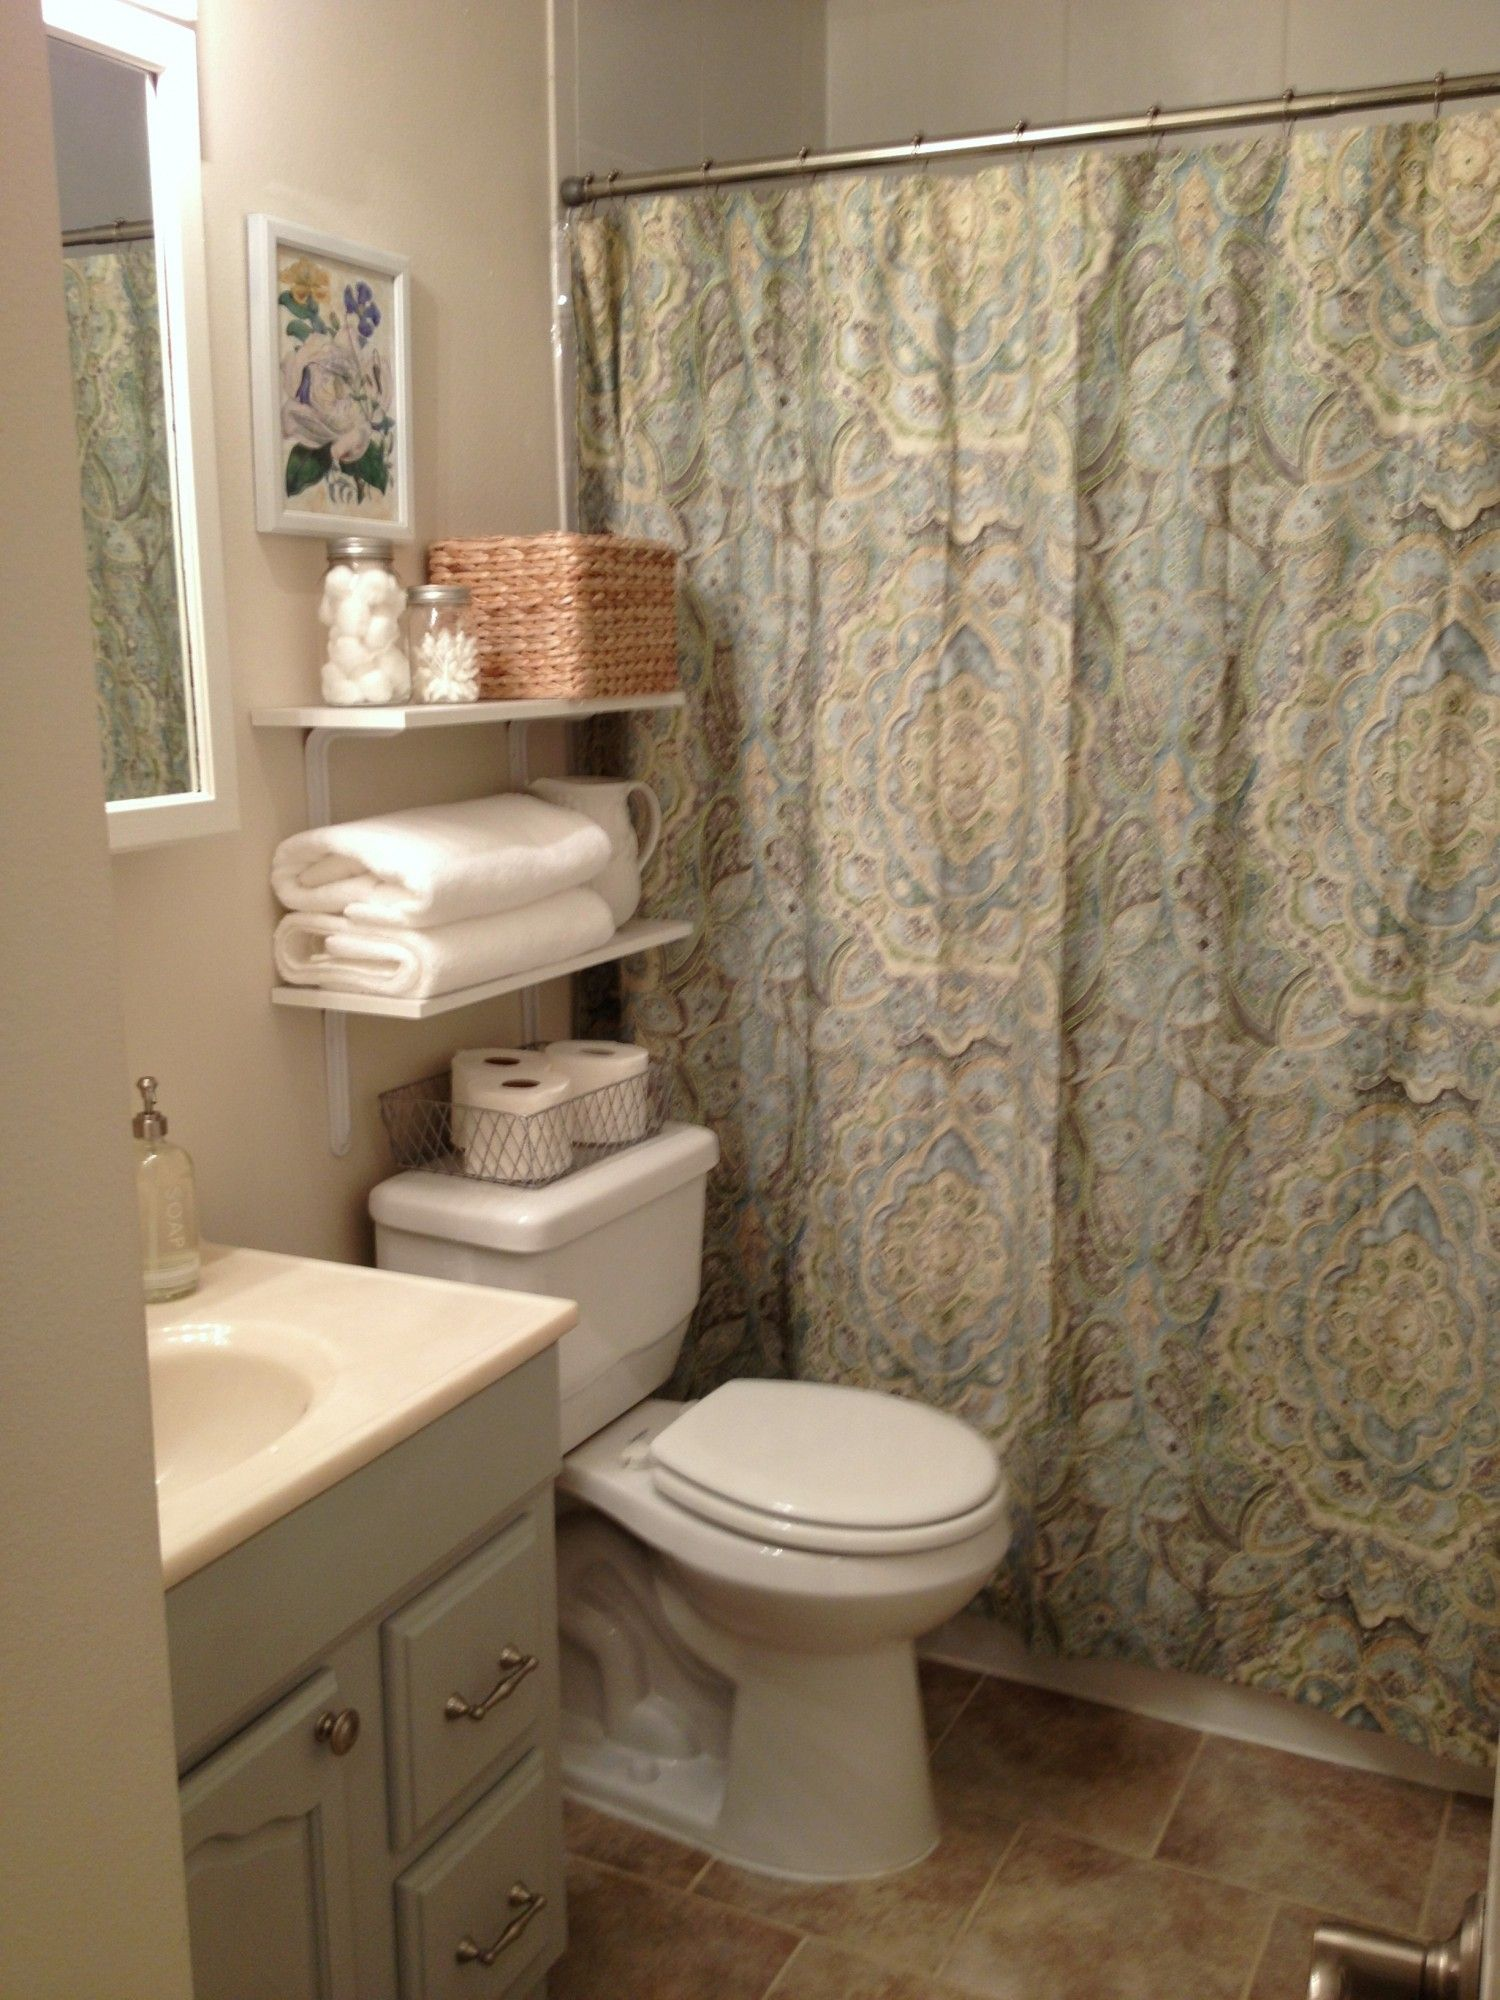 small bathroom design idea with floral shower curtain astounding white vanity stunning and oval washbasin also vintage toilet seat wall mount shelves mirror